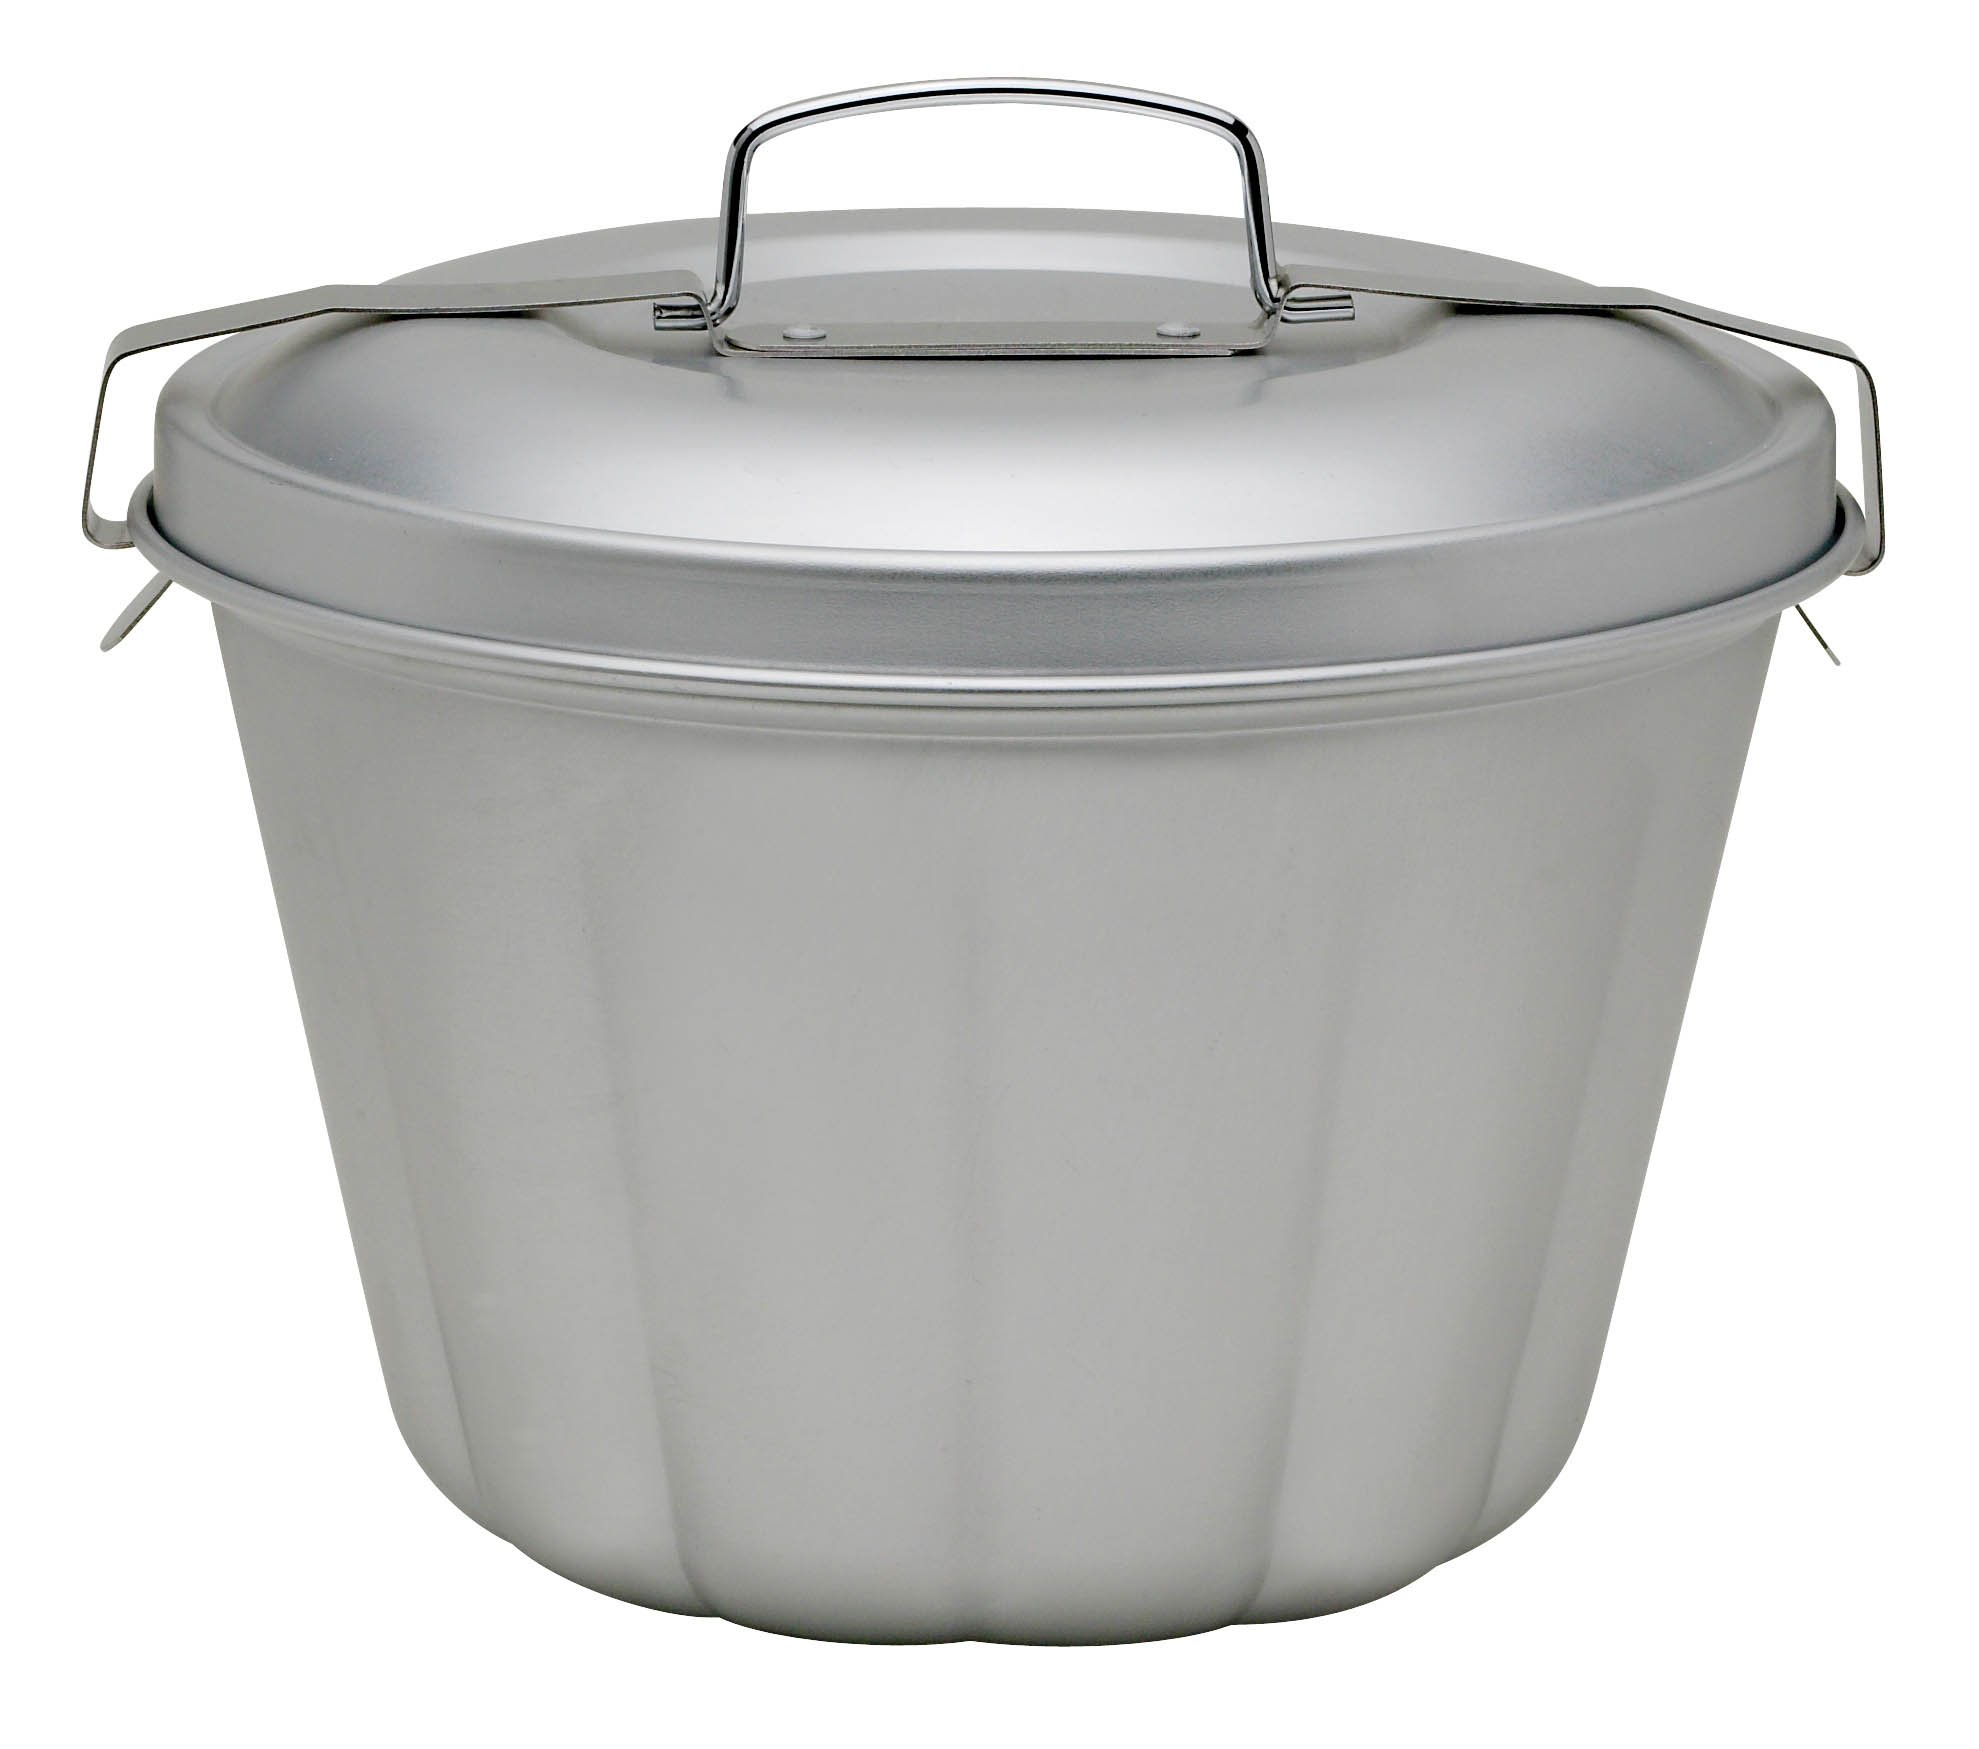 Mrs. Anderson's Baking 43715 Non-Stick Steamed Pudding Mold with Lid, 1.6-Liters